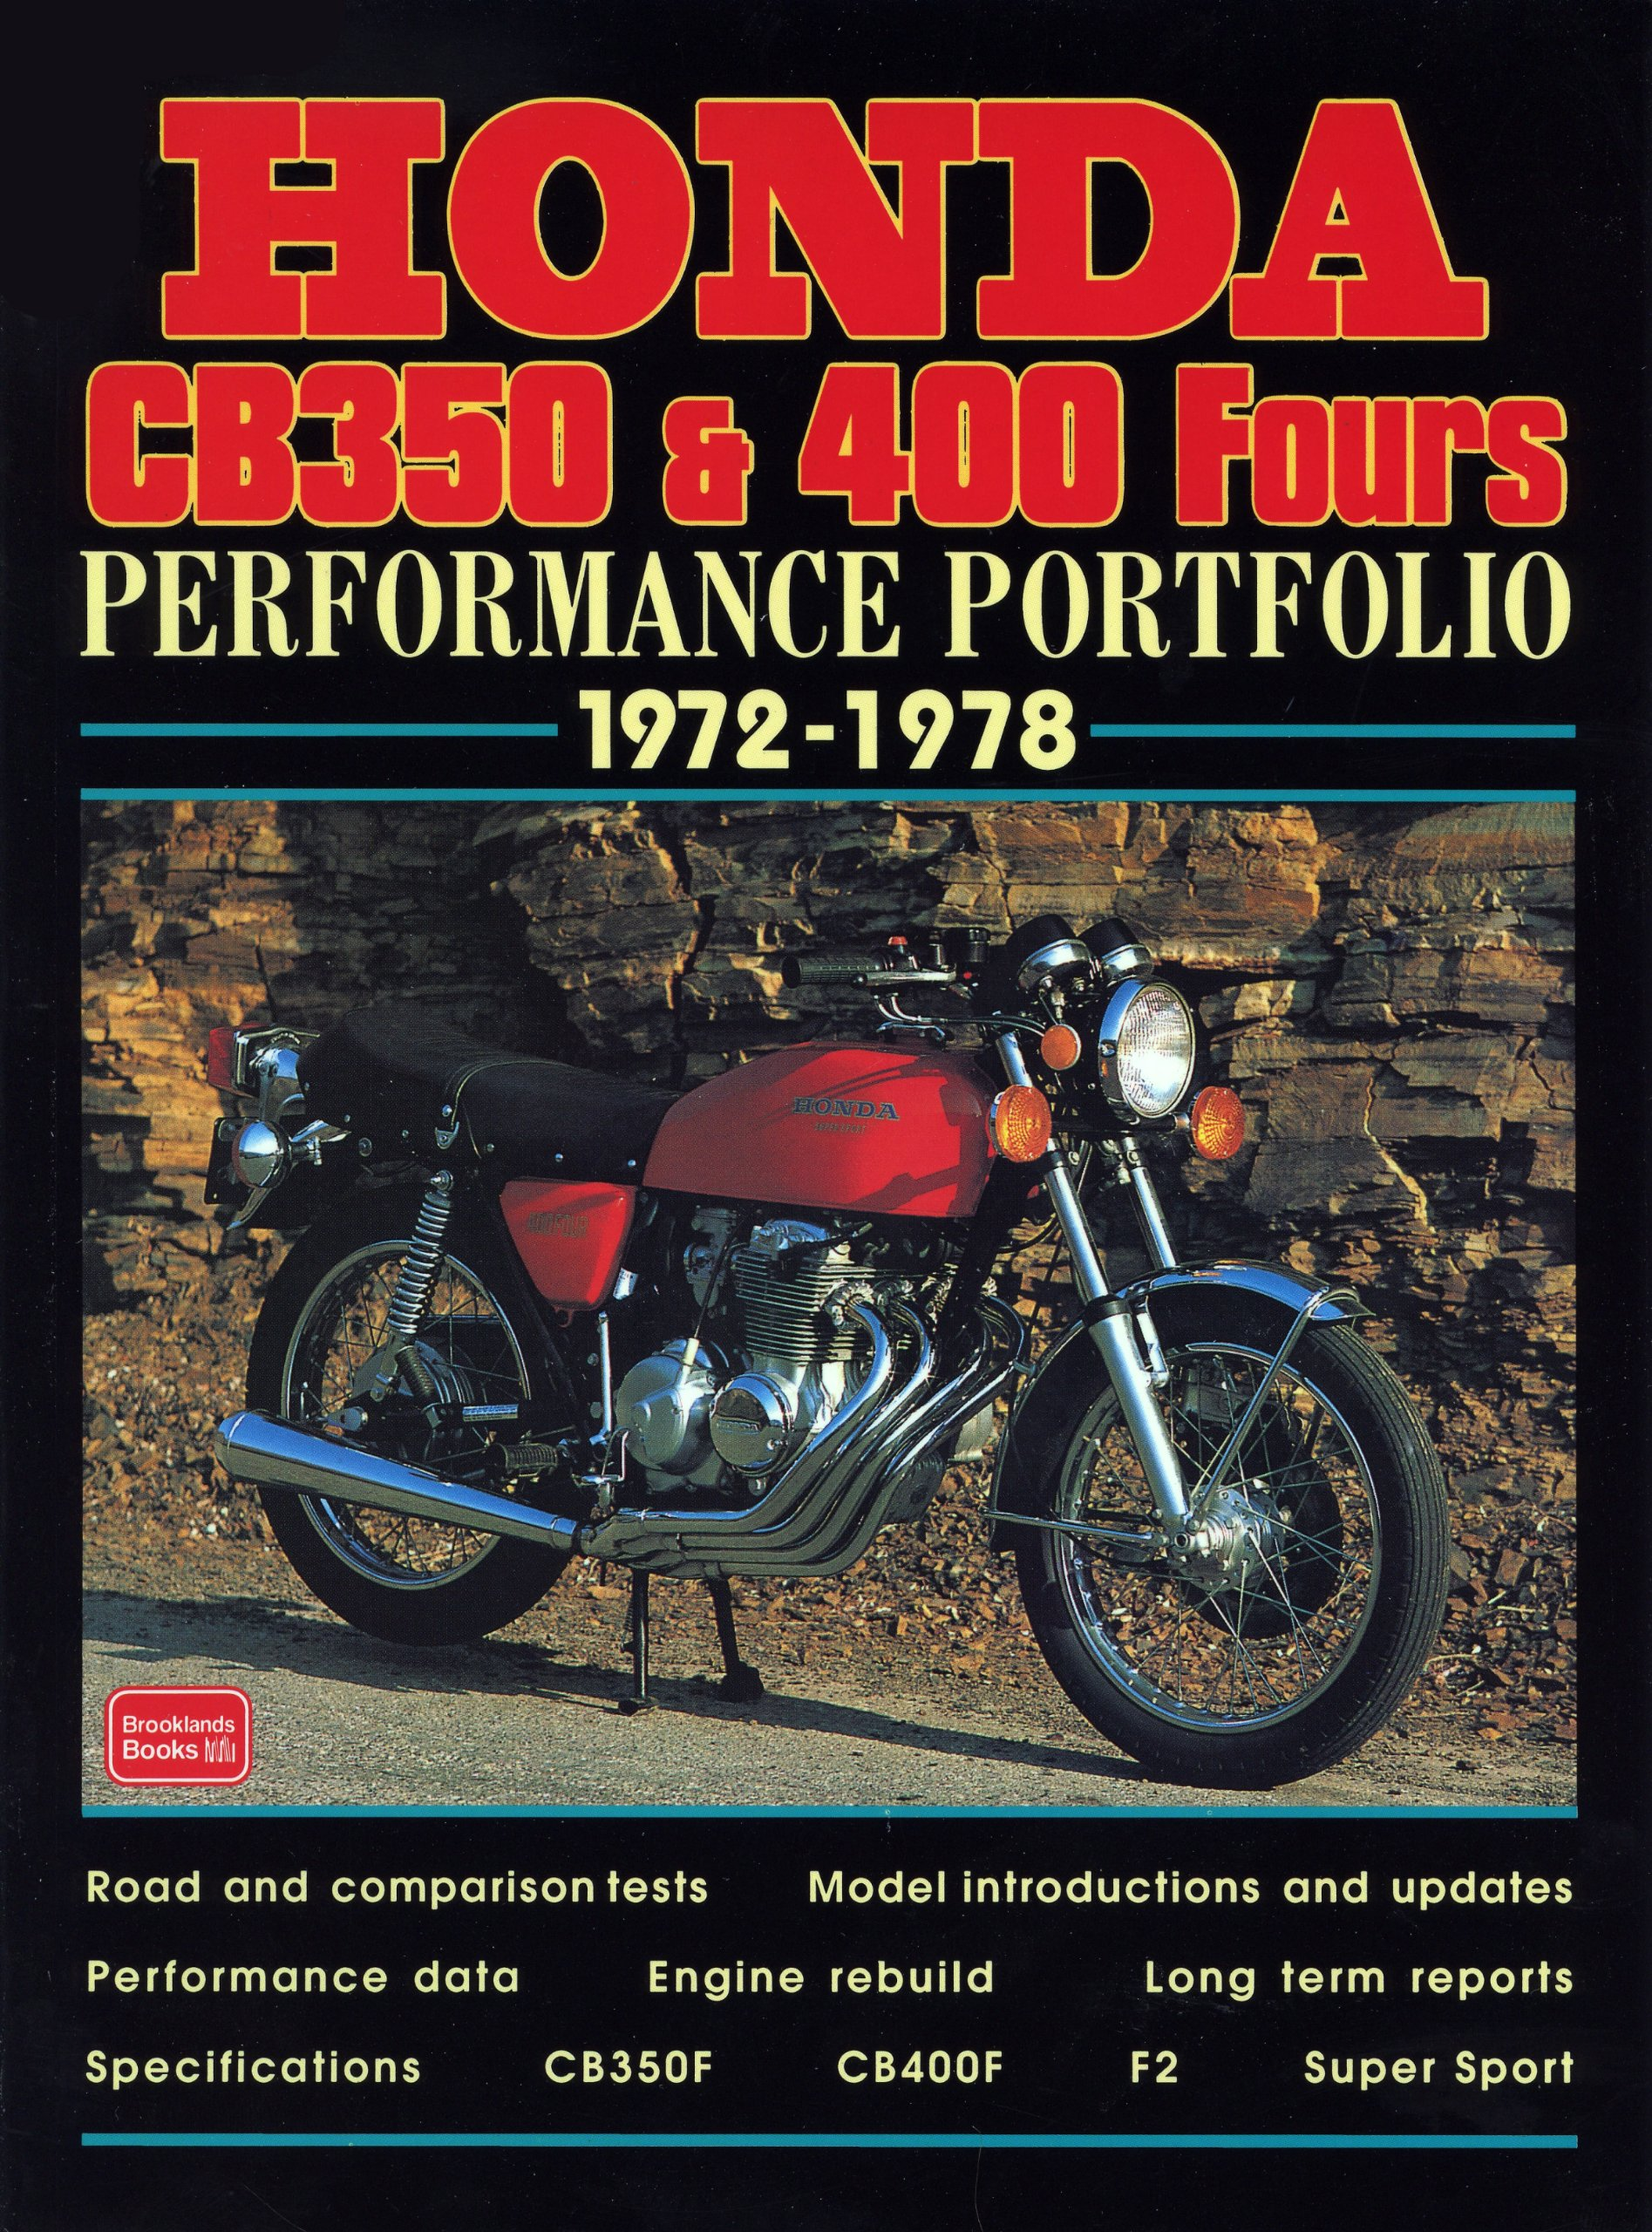 Honda CB350 /& 400 Fours Performance Portfolio 1972-1978